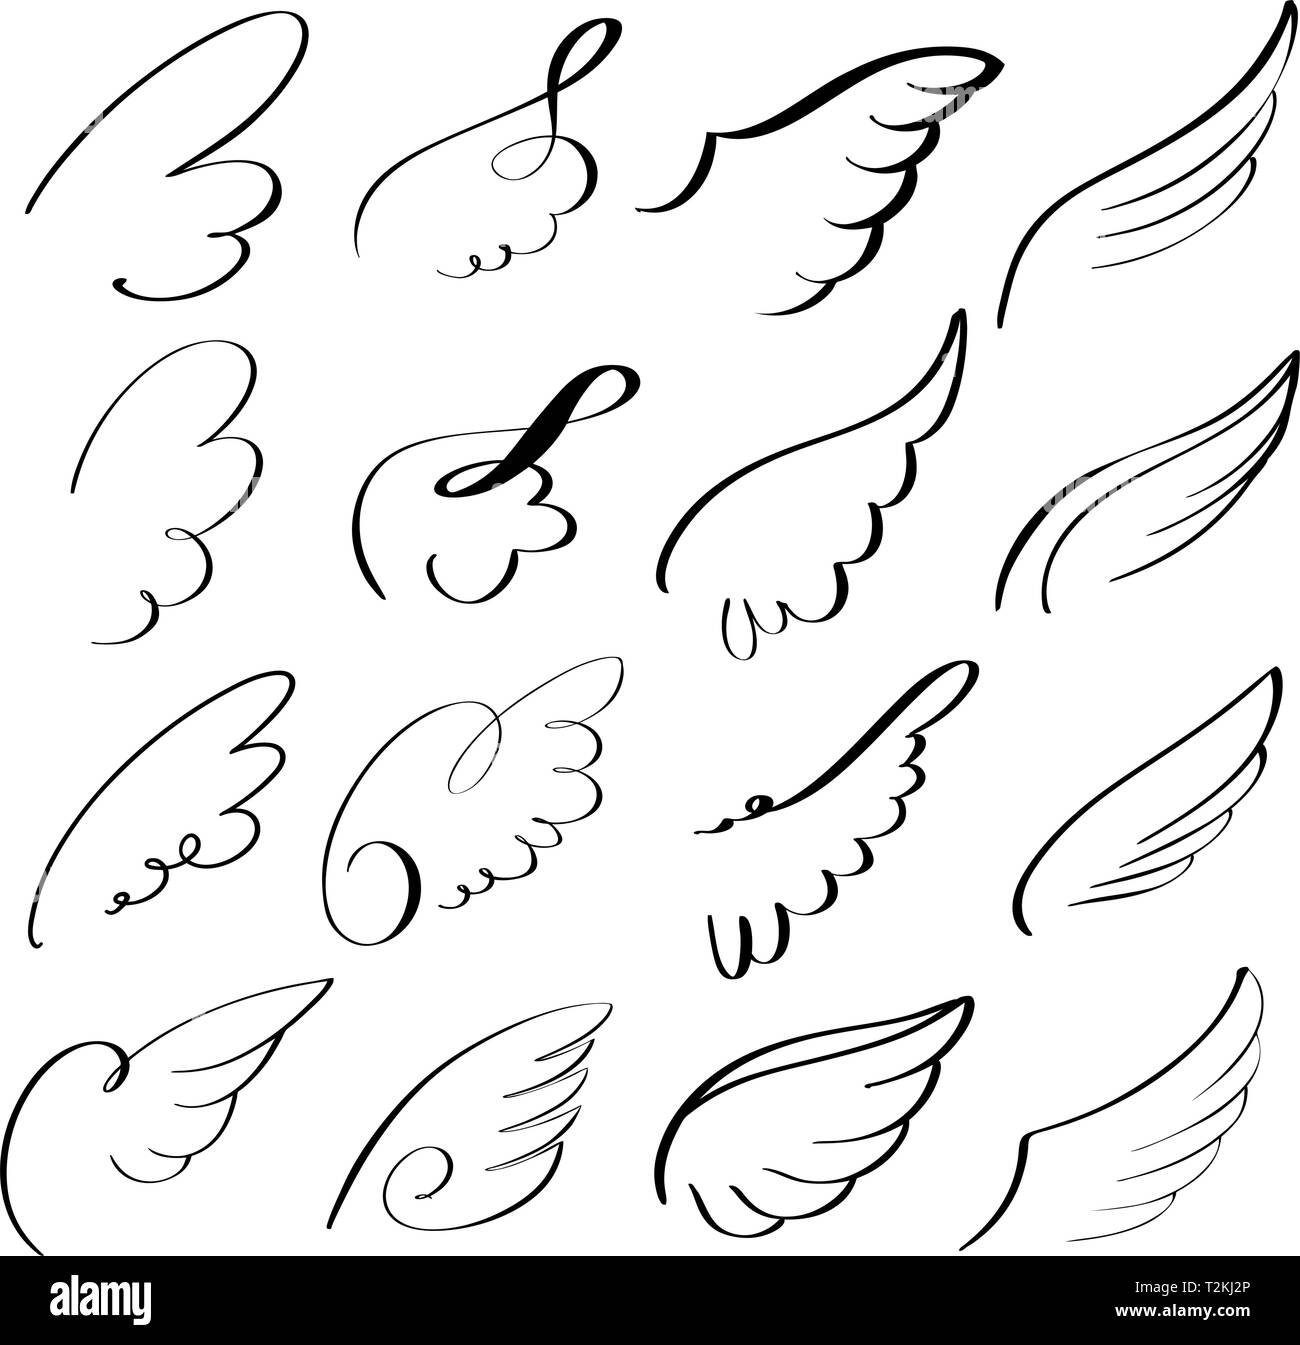 abstract flying dove sketch set icon collection cartoon hand drawn vector illustration sketch. - Stock Image